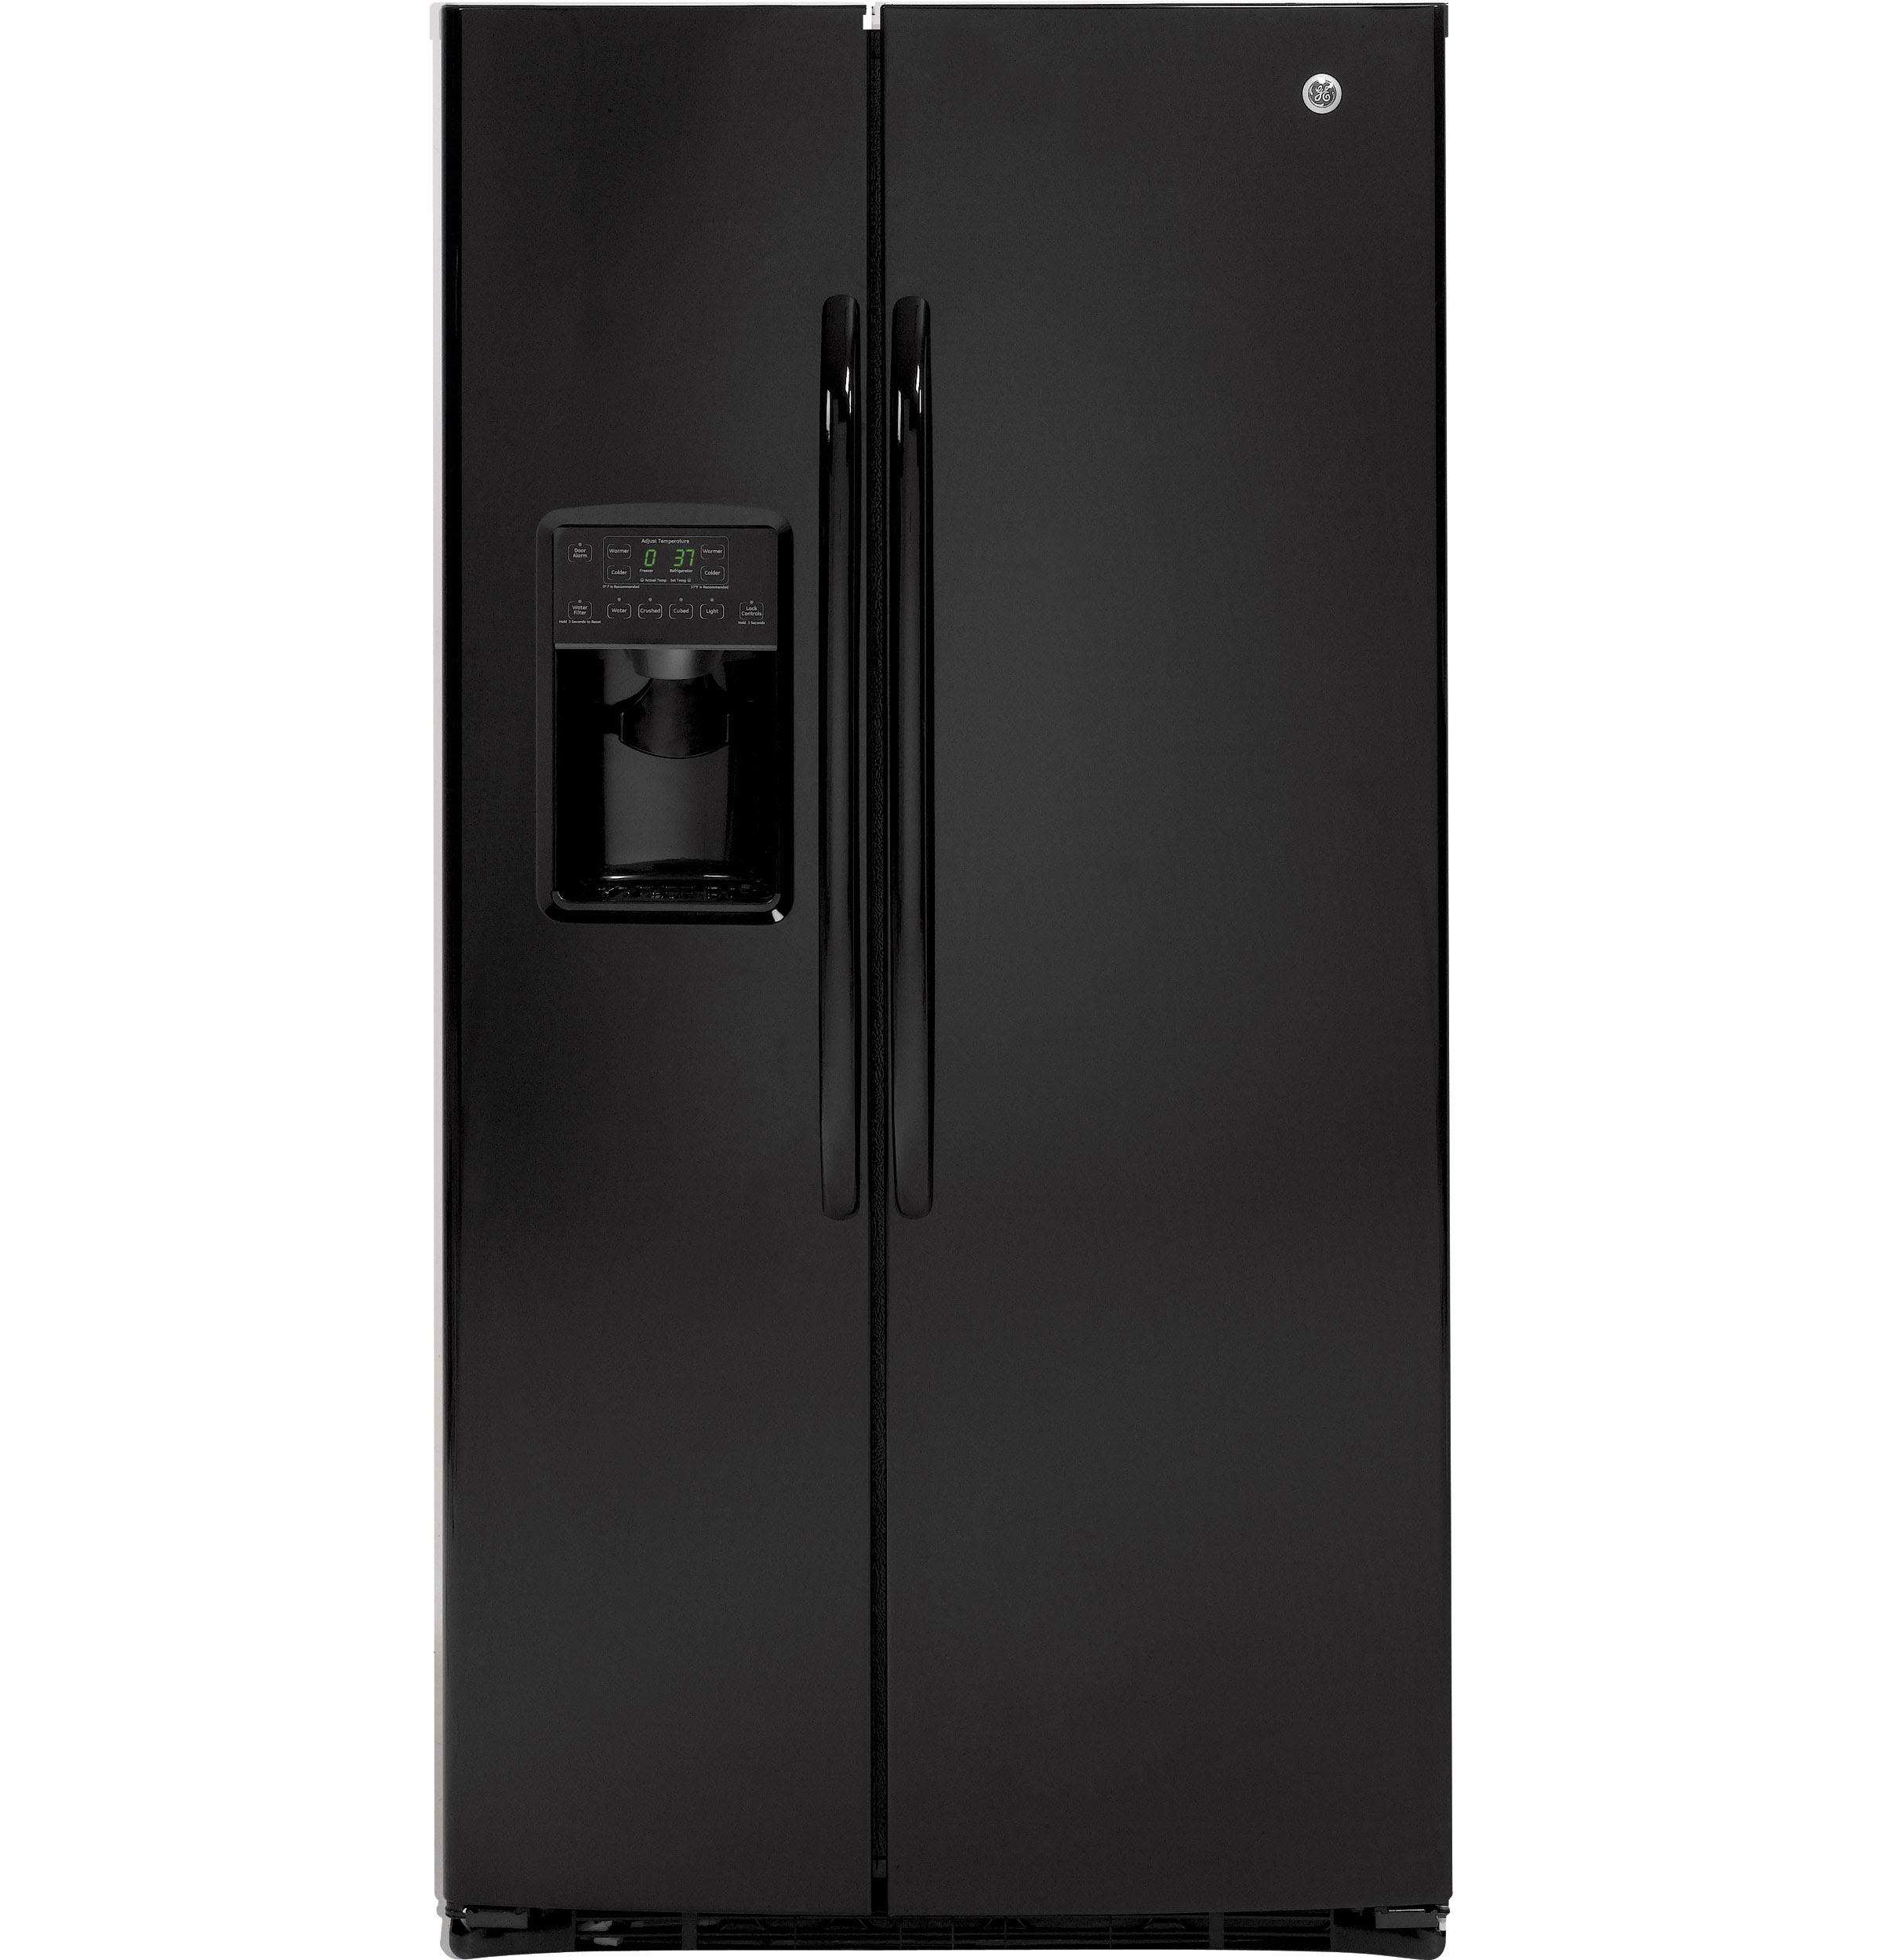 GE ENERGY STAR 25 9 Cu Ft Side By Side Refrigerator with